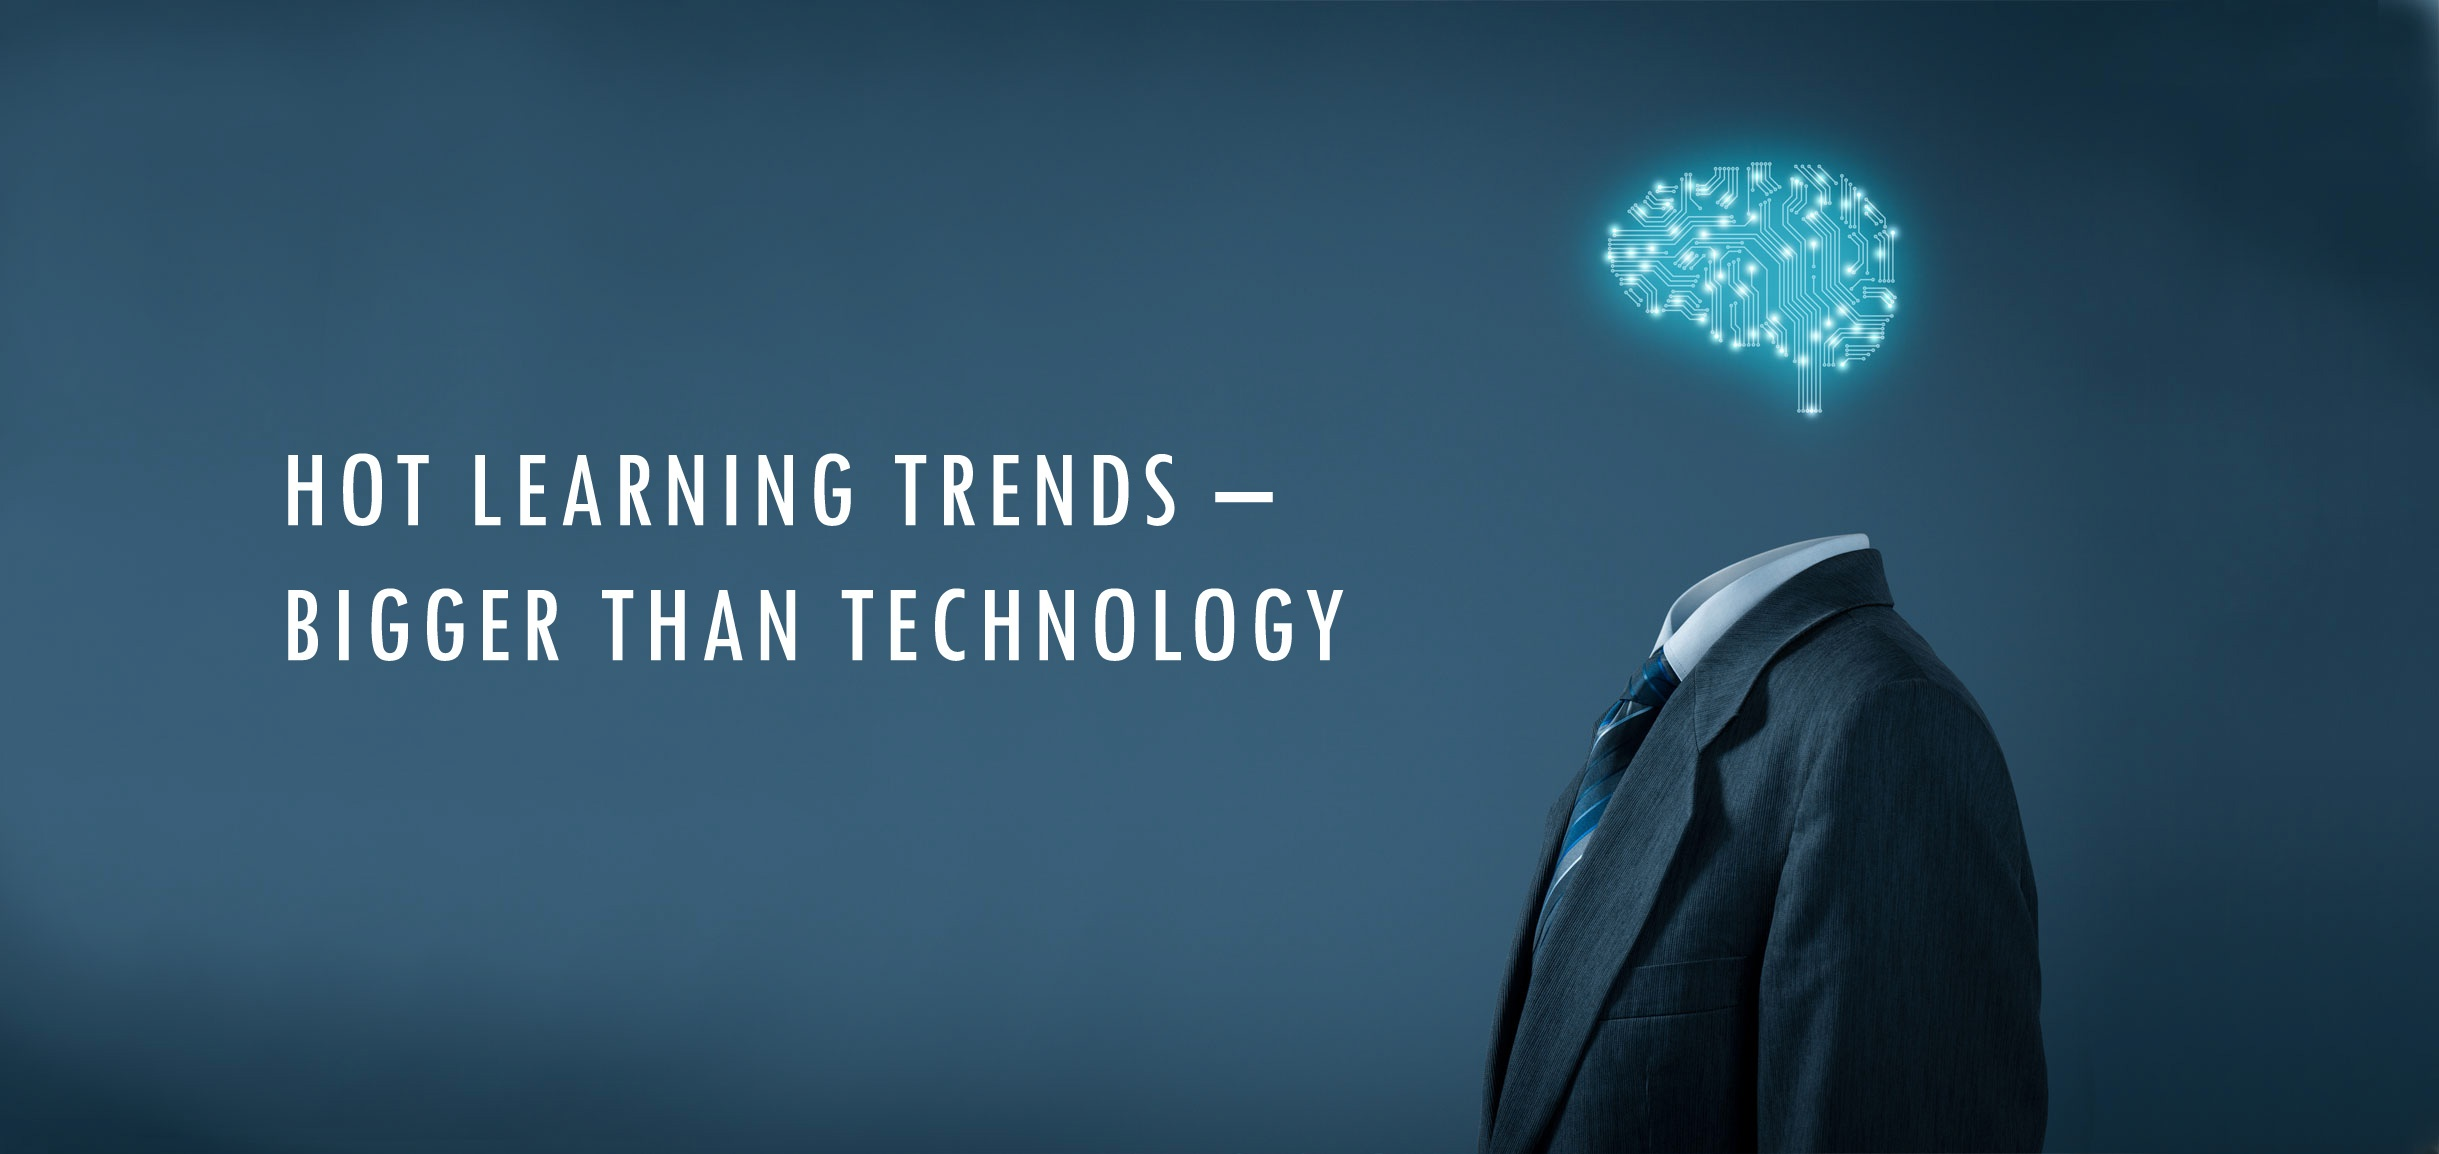 Hot_learning trends bigger than technology.jpg